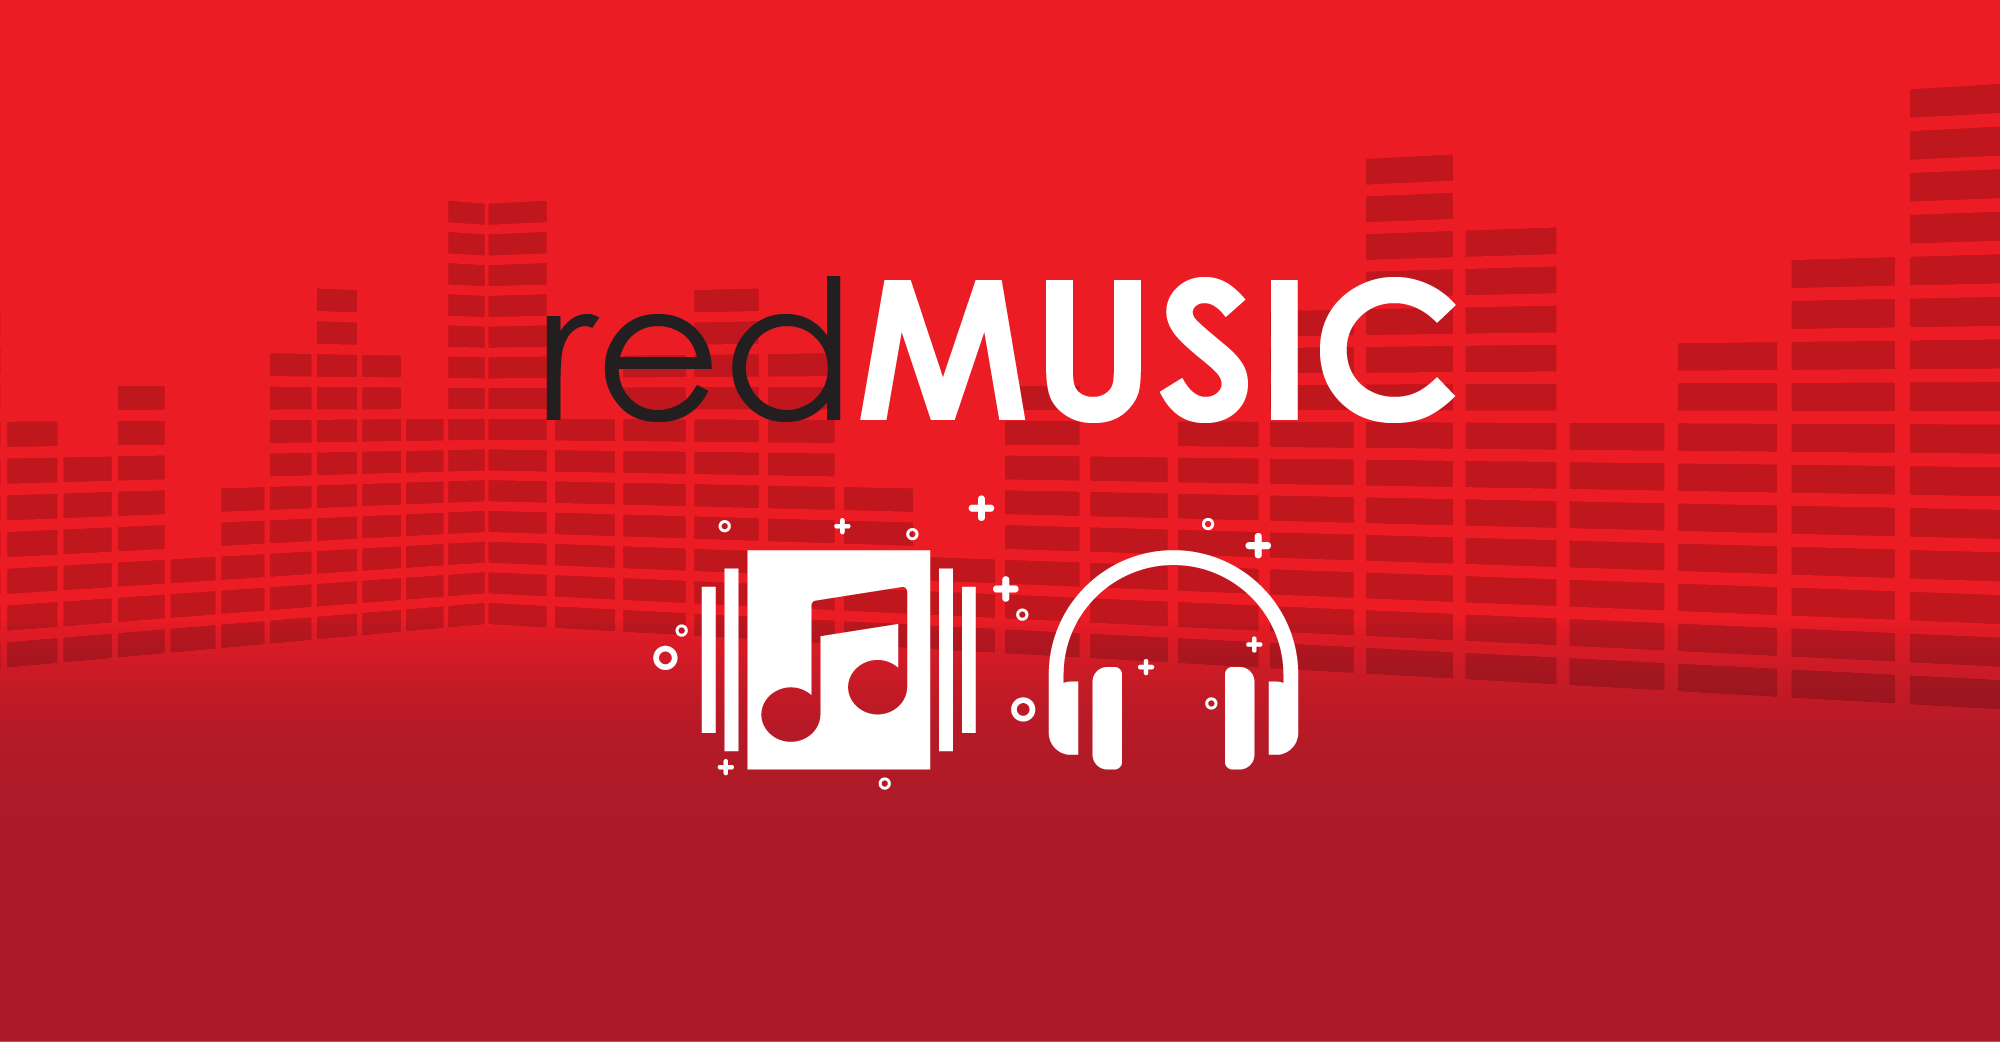 Enjoy your favourite songs on redMUSIC online radio channels with UNLIMITED data!